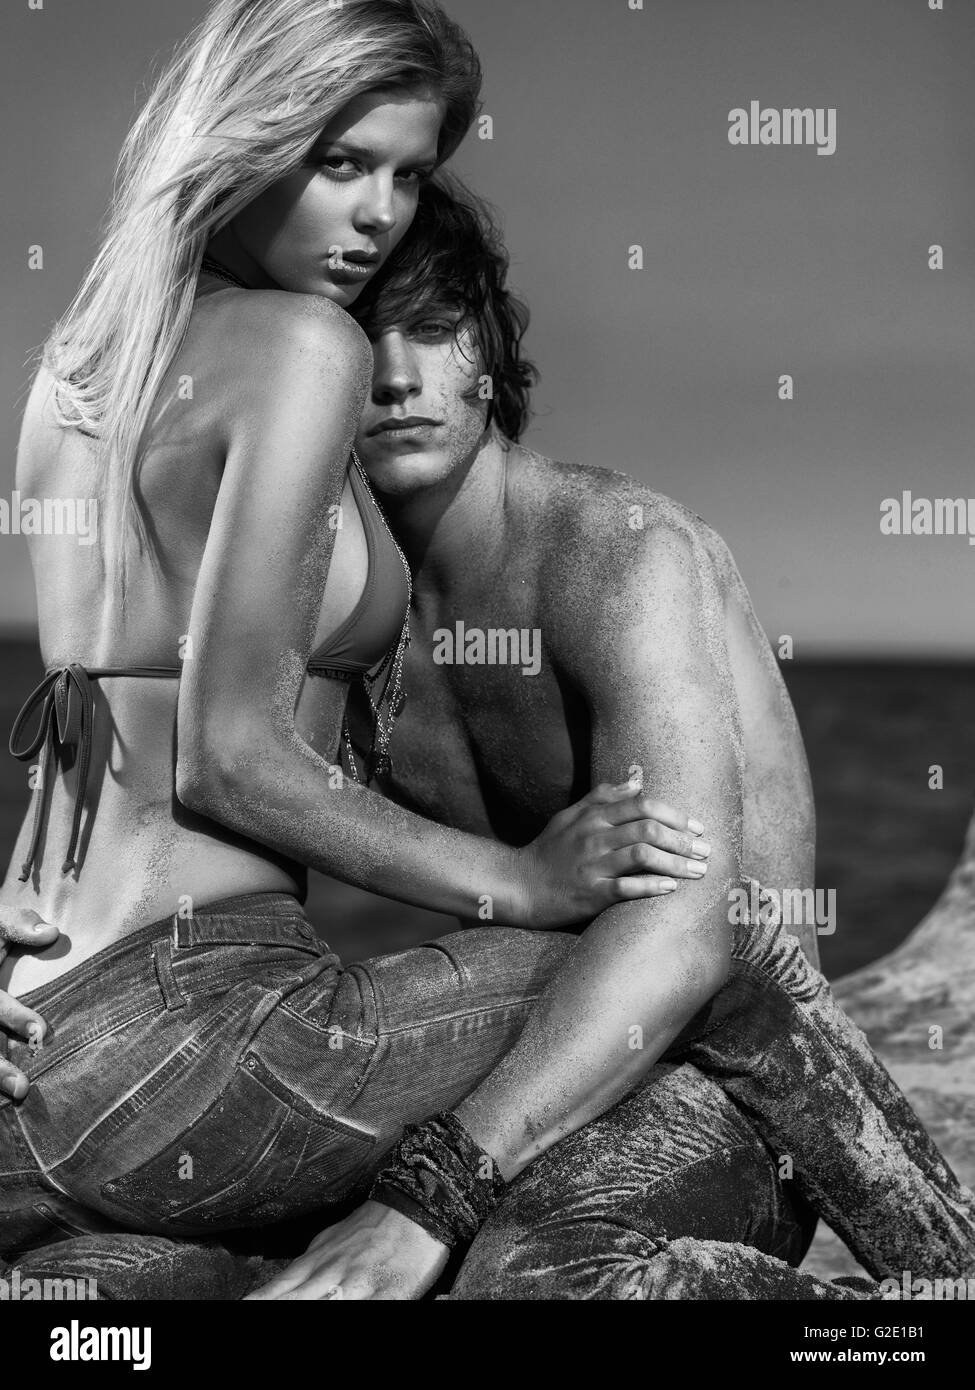 Lovers sitting on the beach, the man resting his head on the woman's chest, Toronto, Ontario Province, Canada - Stock Image